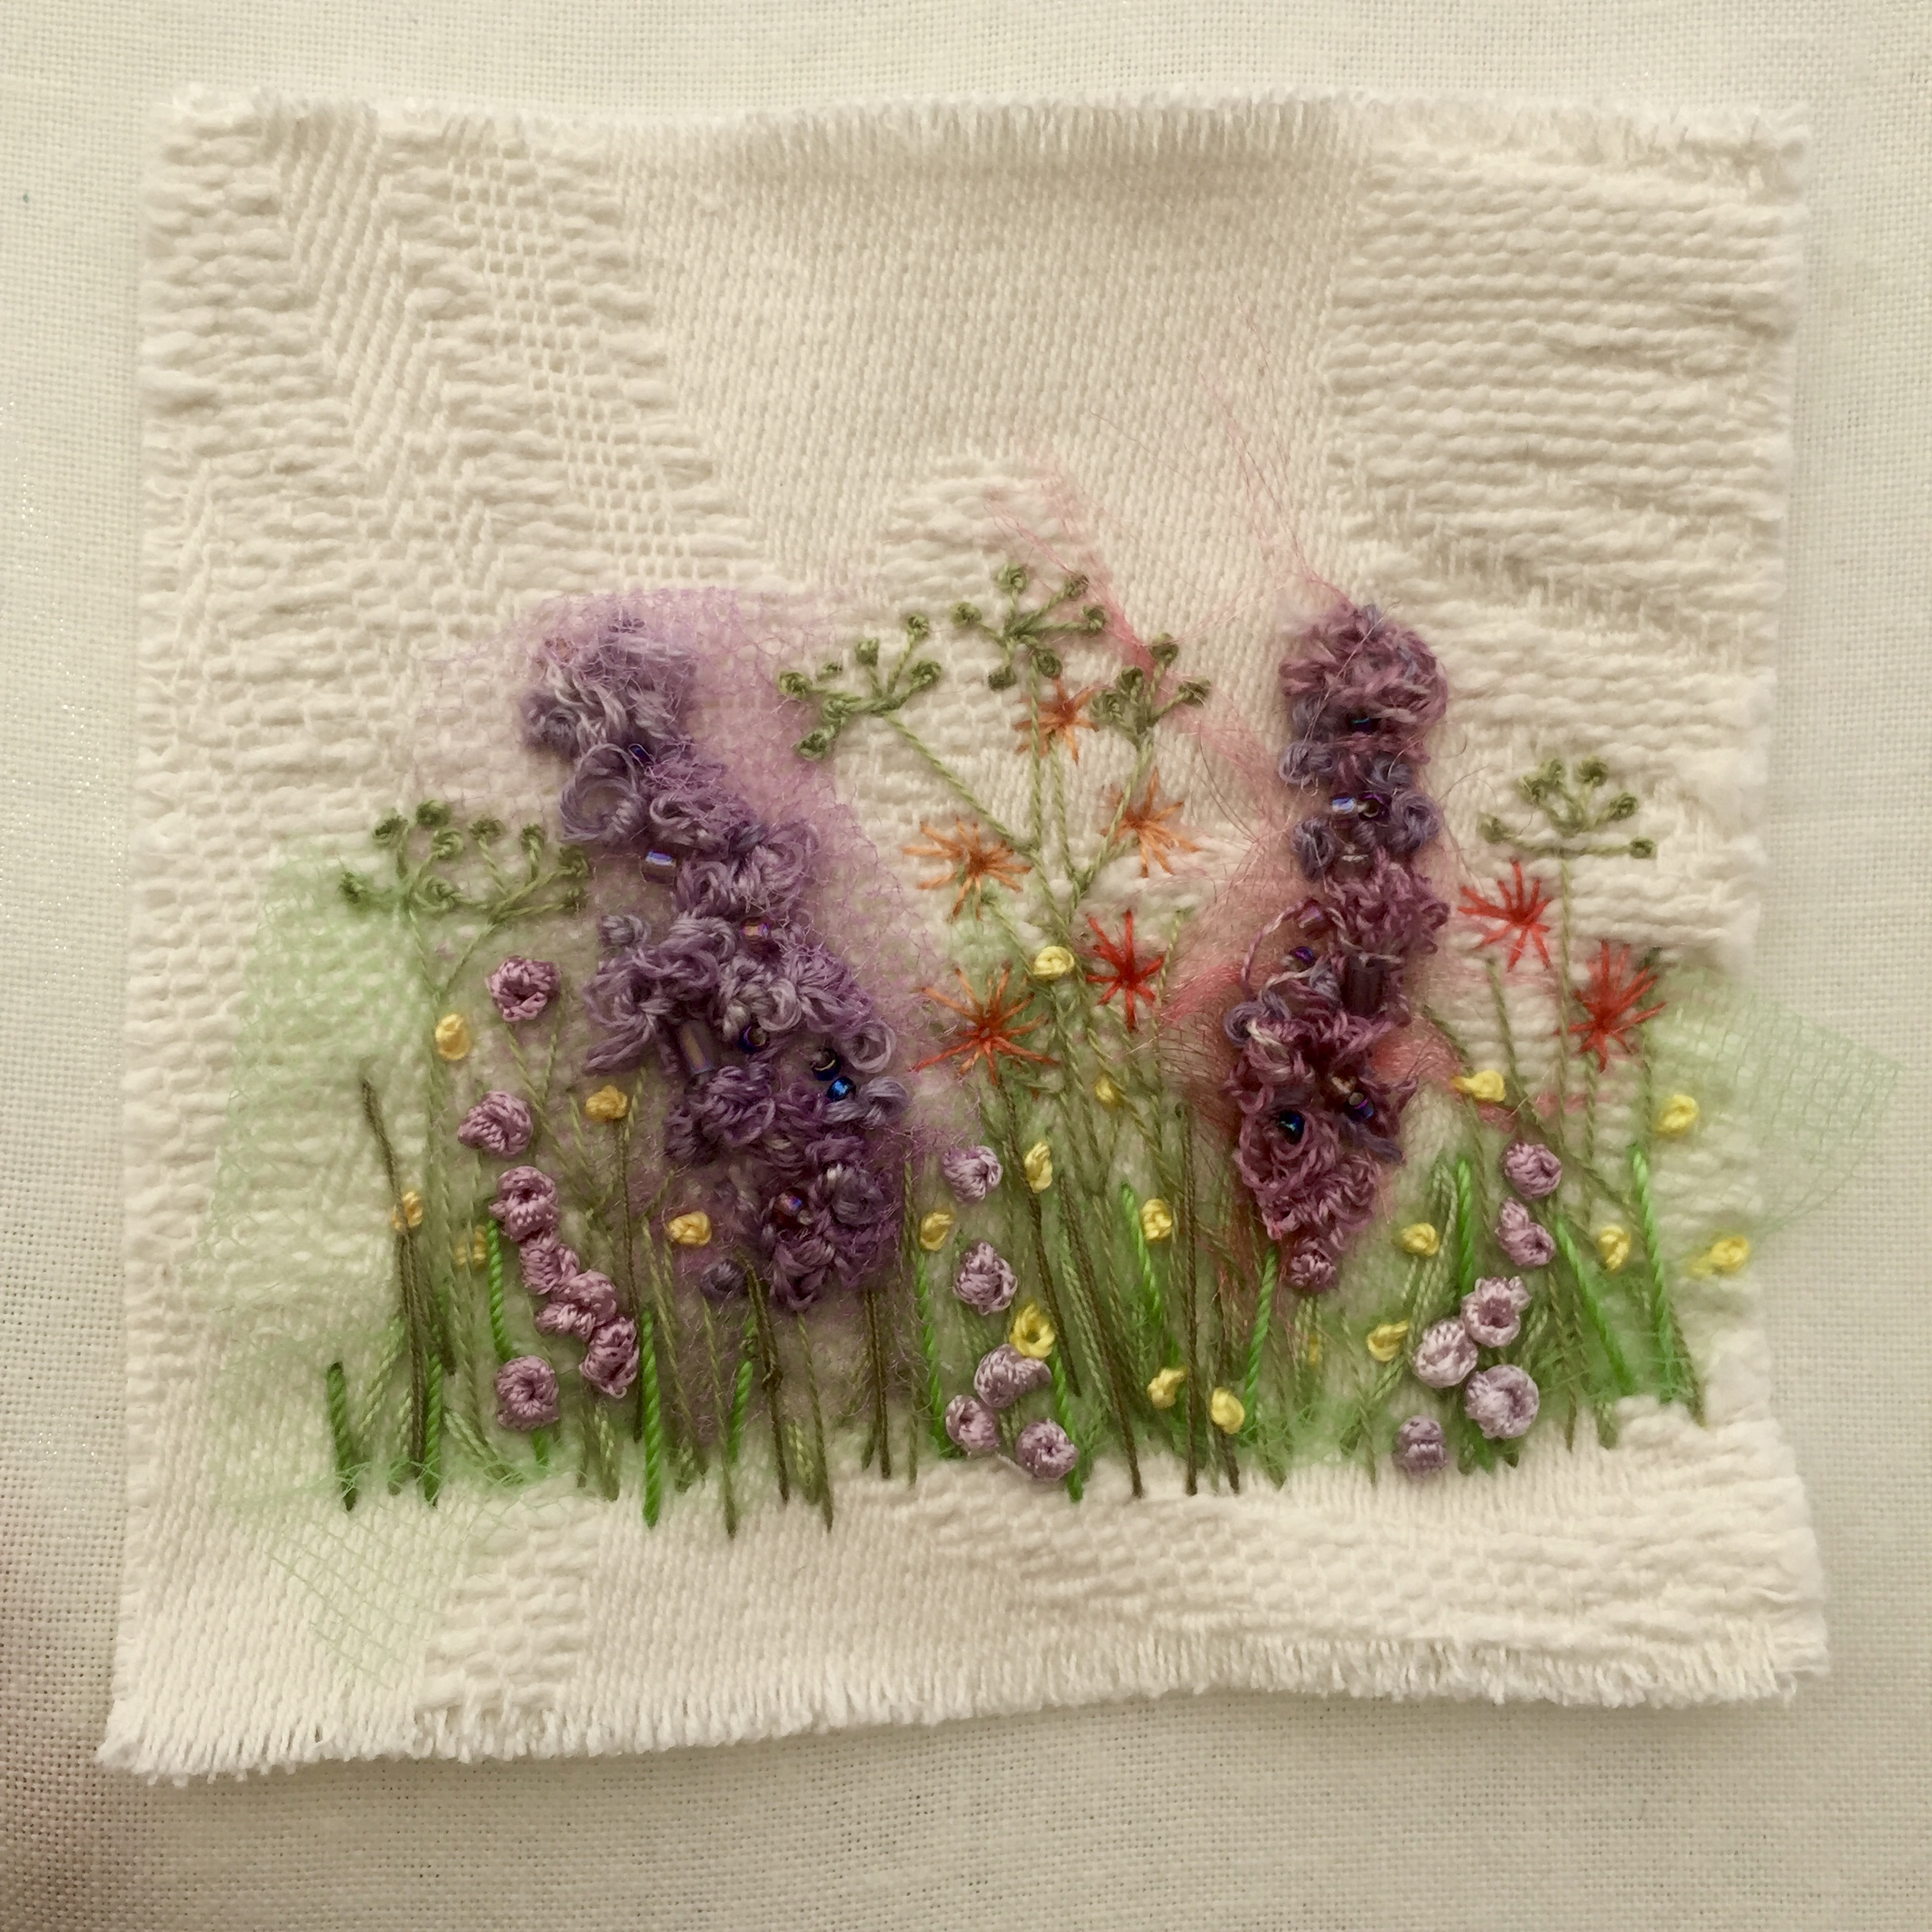 Kates kloths creative embroidery and textile art